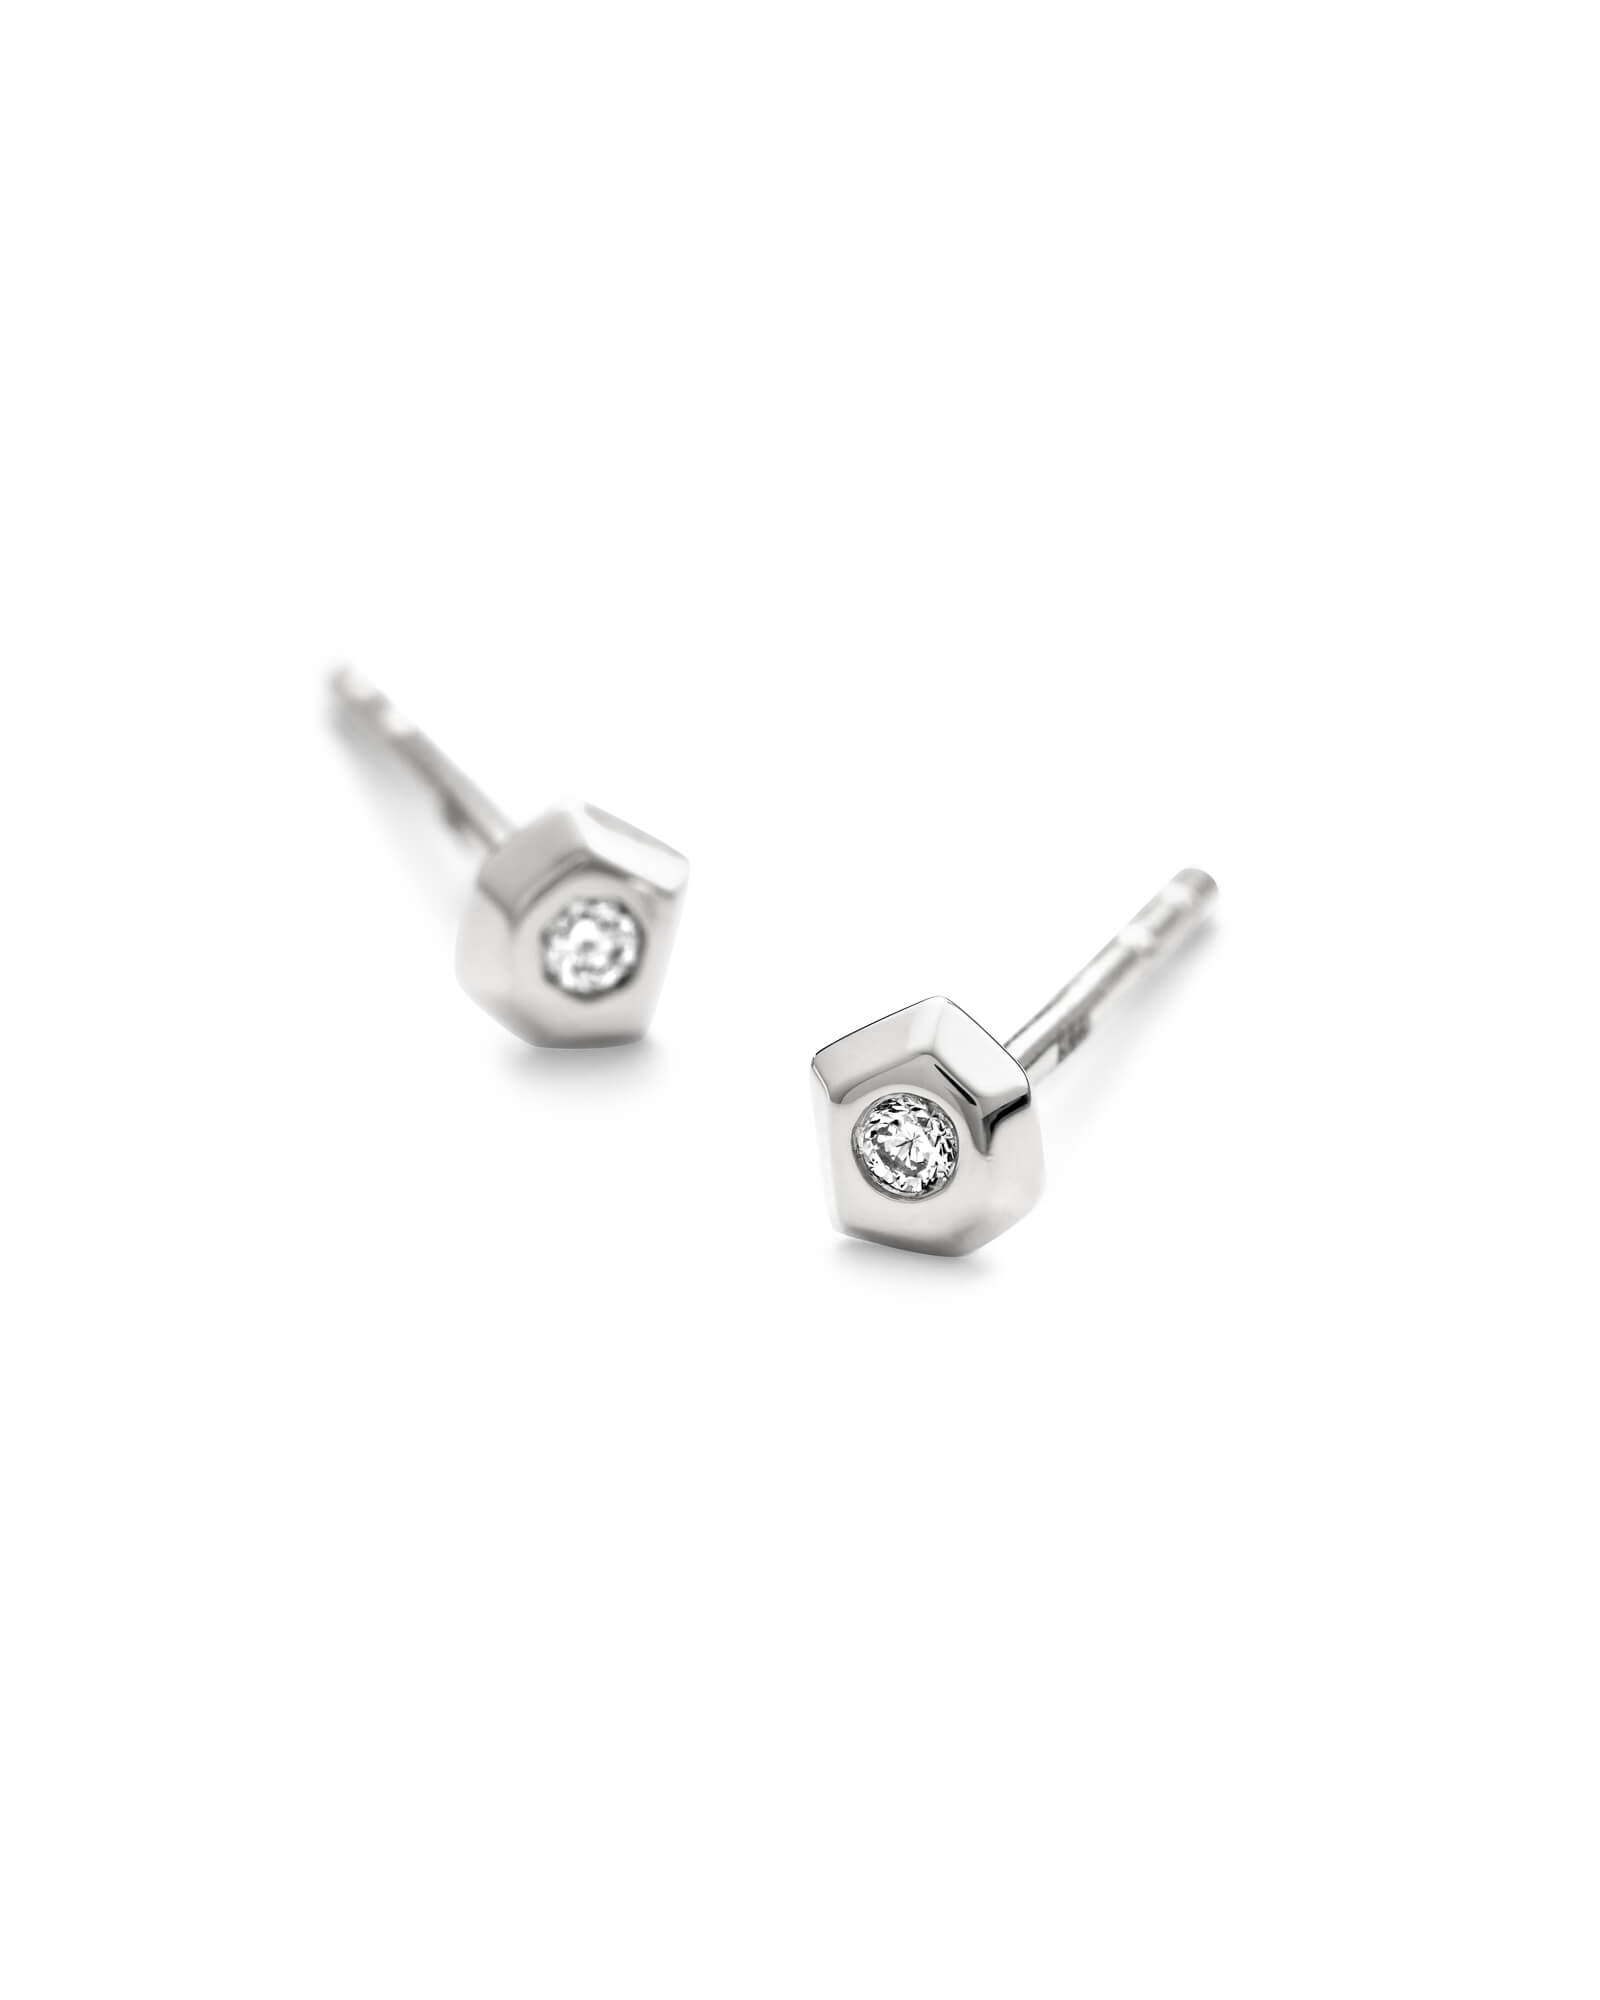 Janiya 14k White Gold Stud Earrings in White Diamond